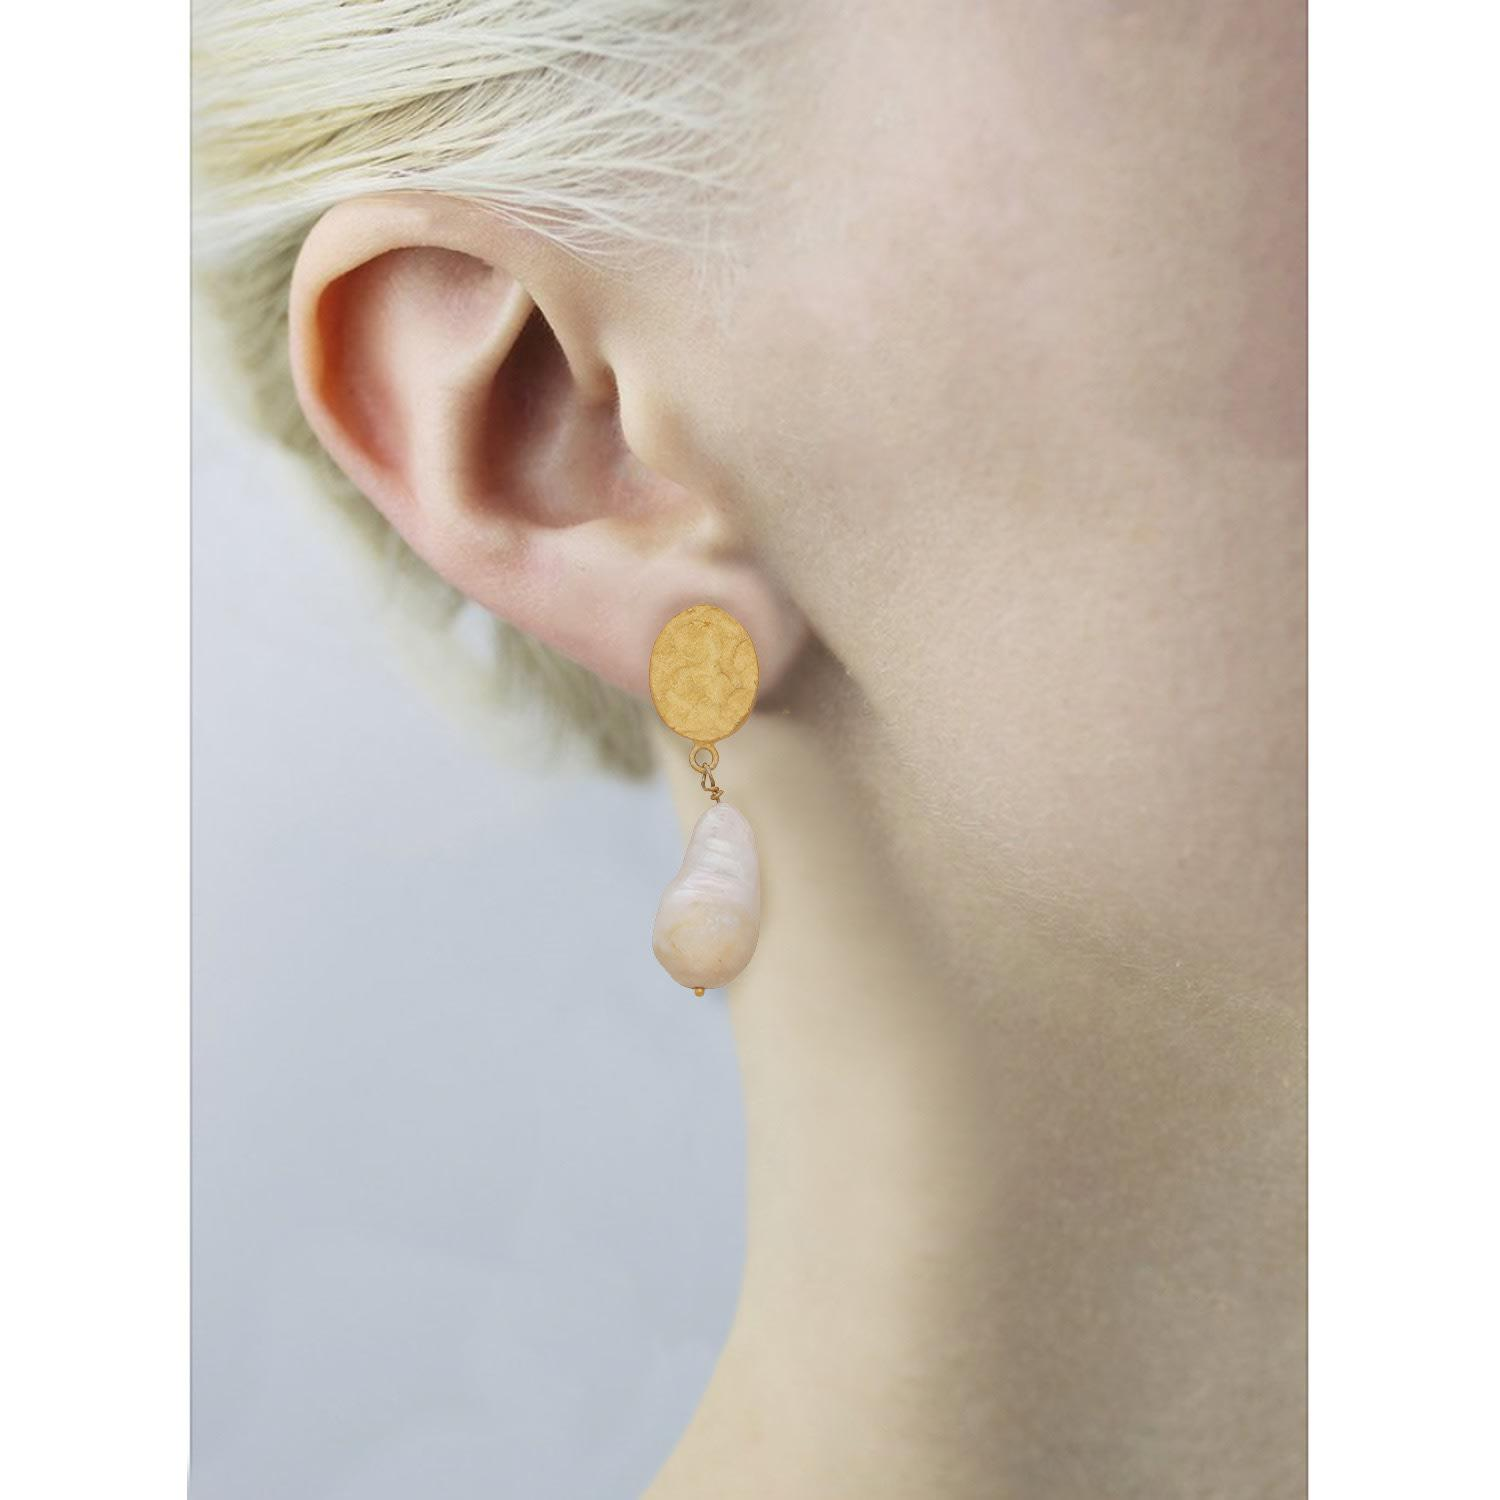 4843db3b1 Carousel Jewels - Multicolor Hammered Gold Nugget & Pearl Earrings - Lyst.  View fullscreen